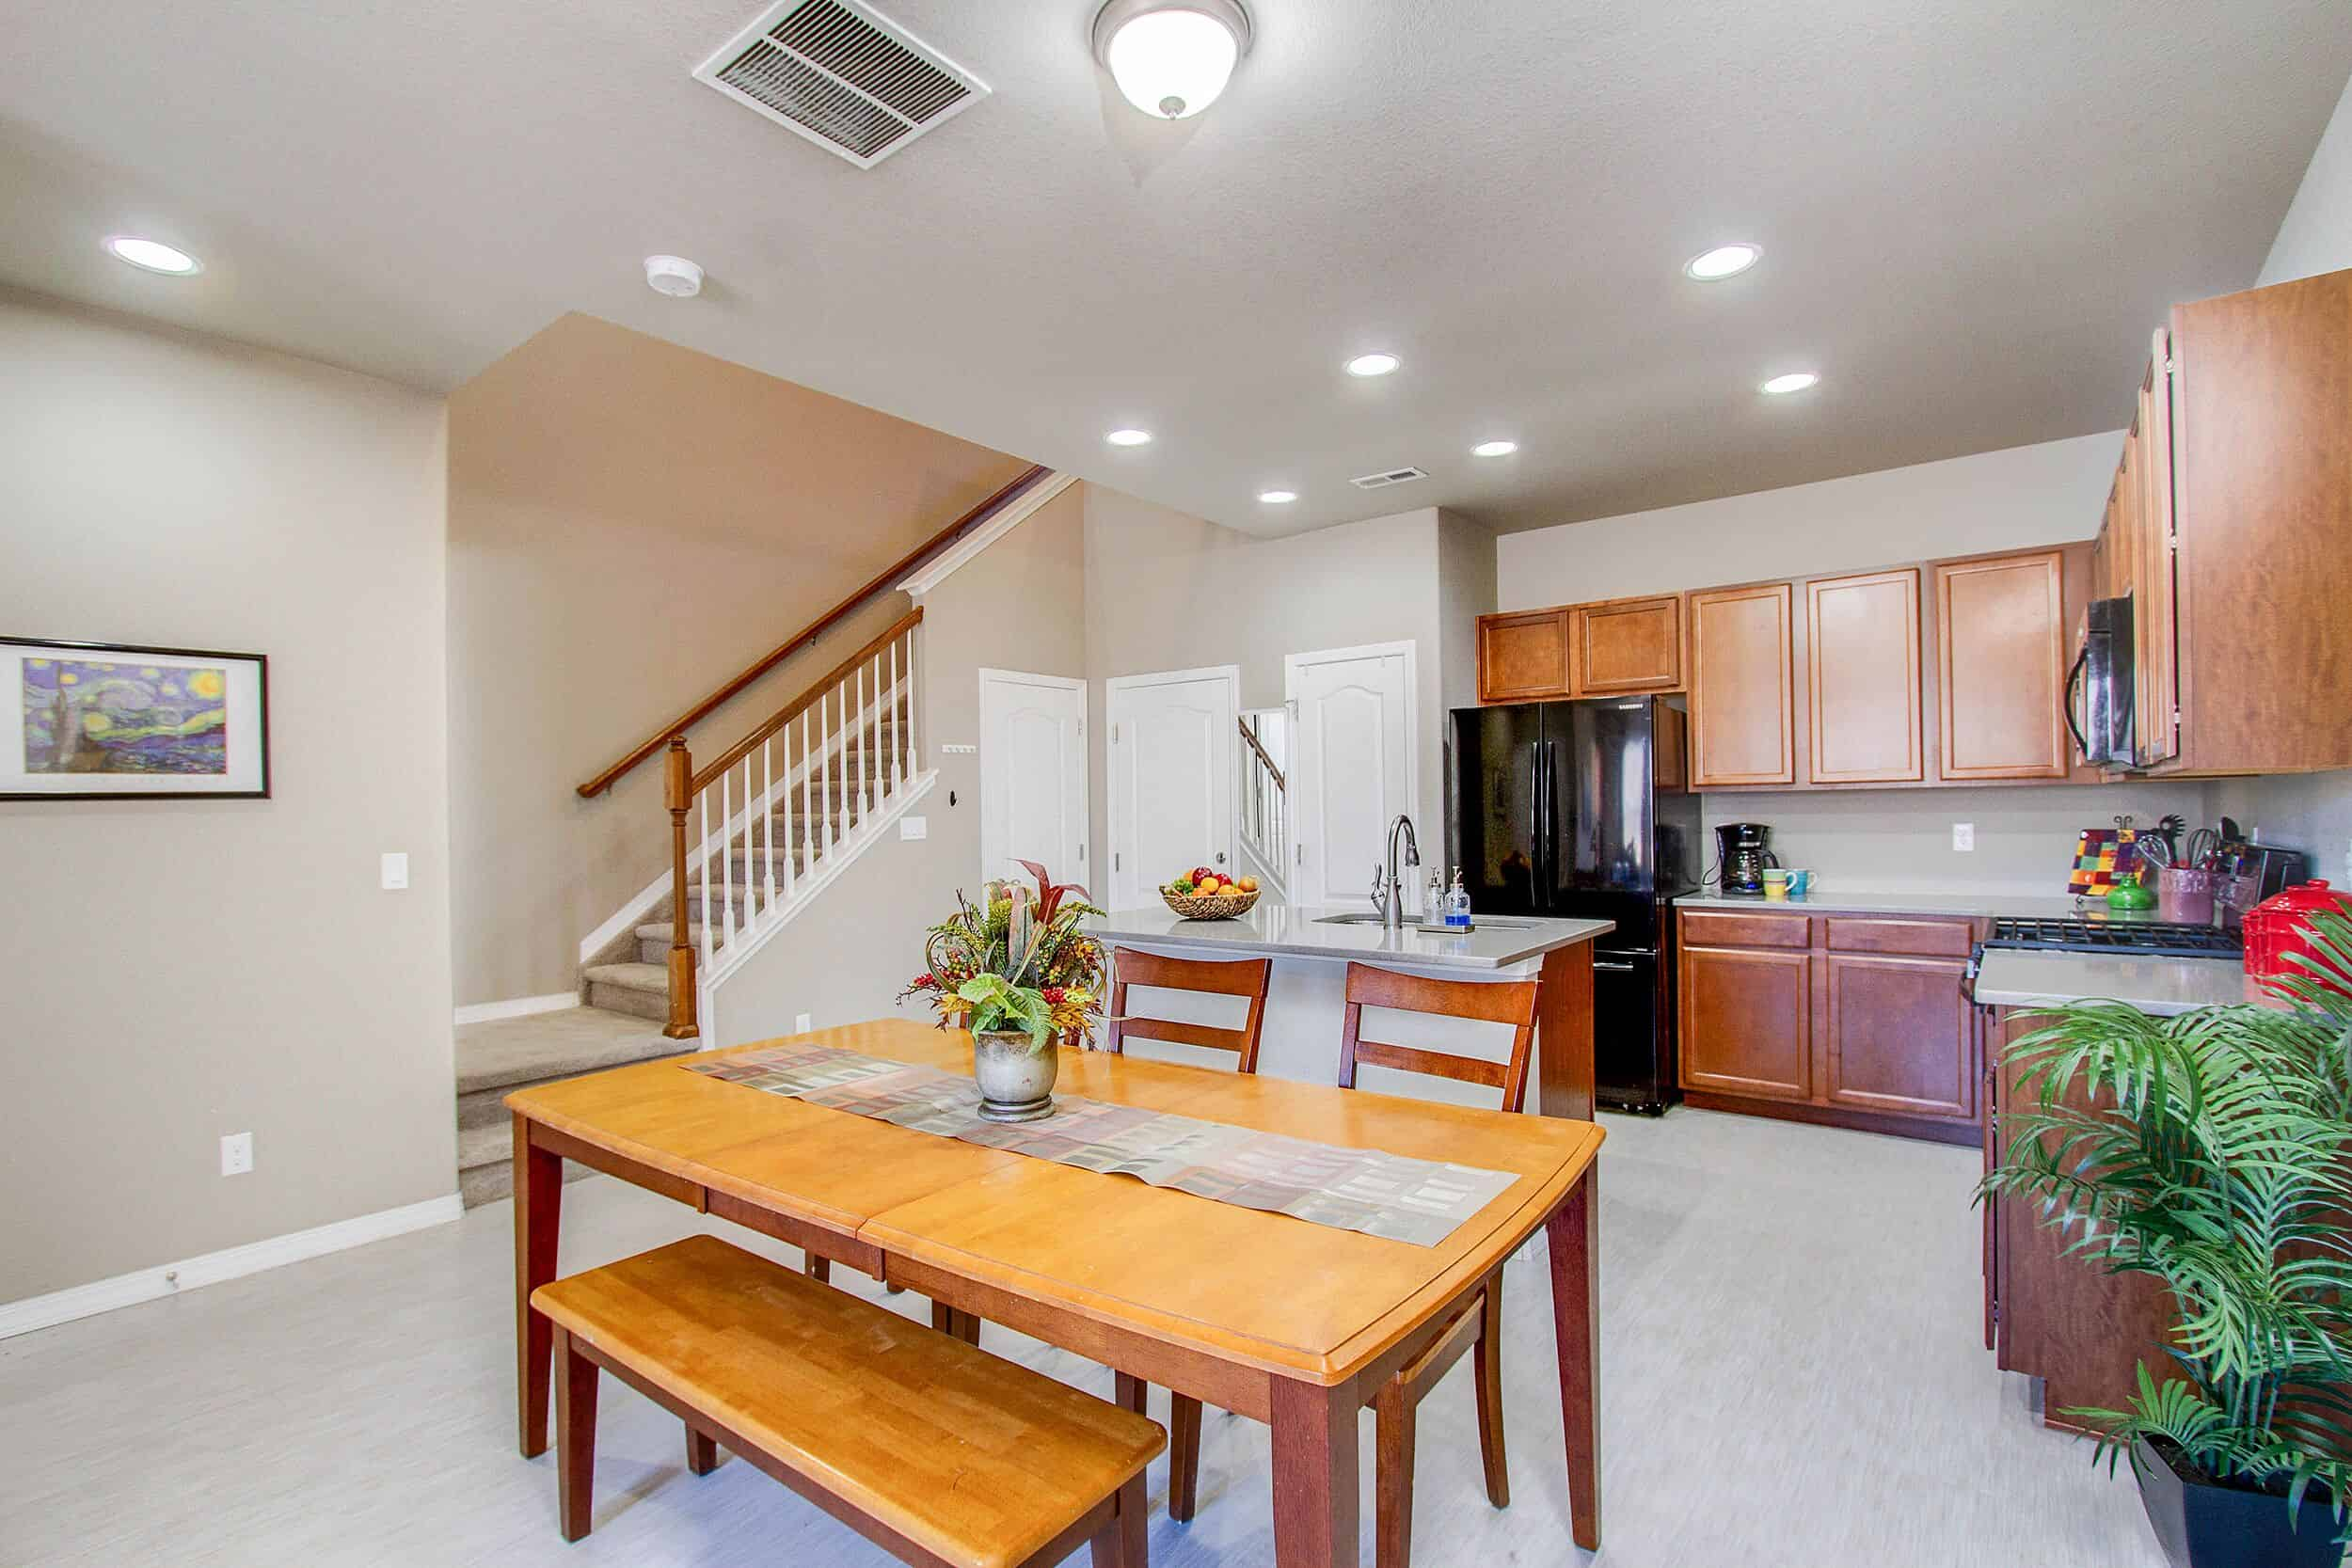 Dining Room, Kitchen and Stairs to Upper Level